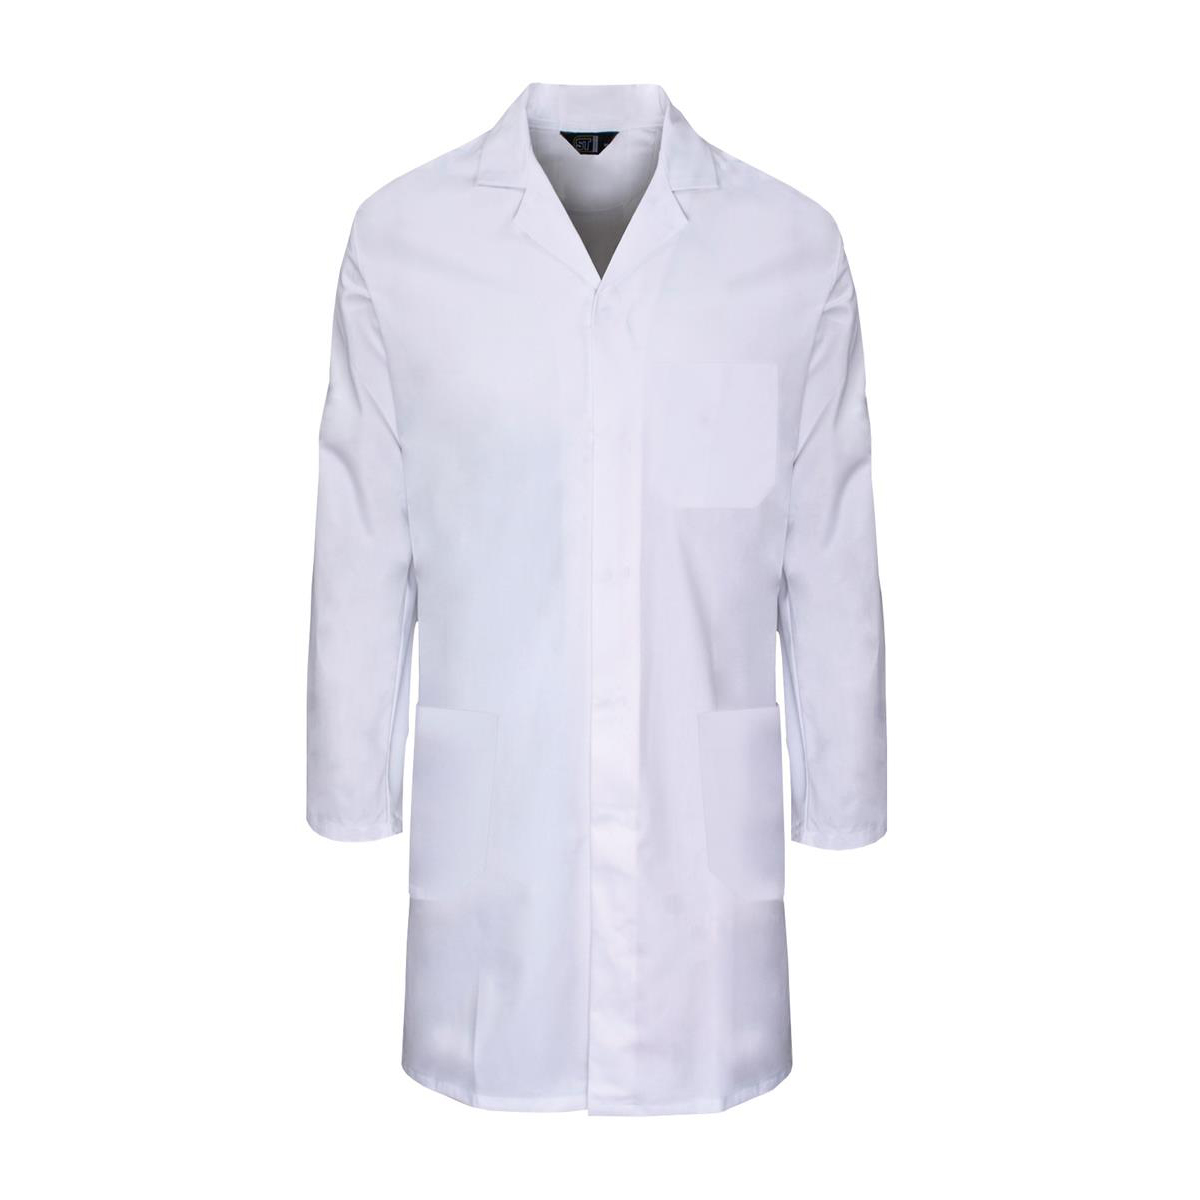 Lab Coat Polycotton with 3 Pockets Size Large White Ref PCWCW44 *Approx 3 Day Leadtime*